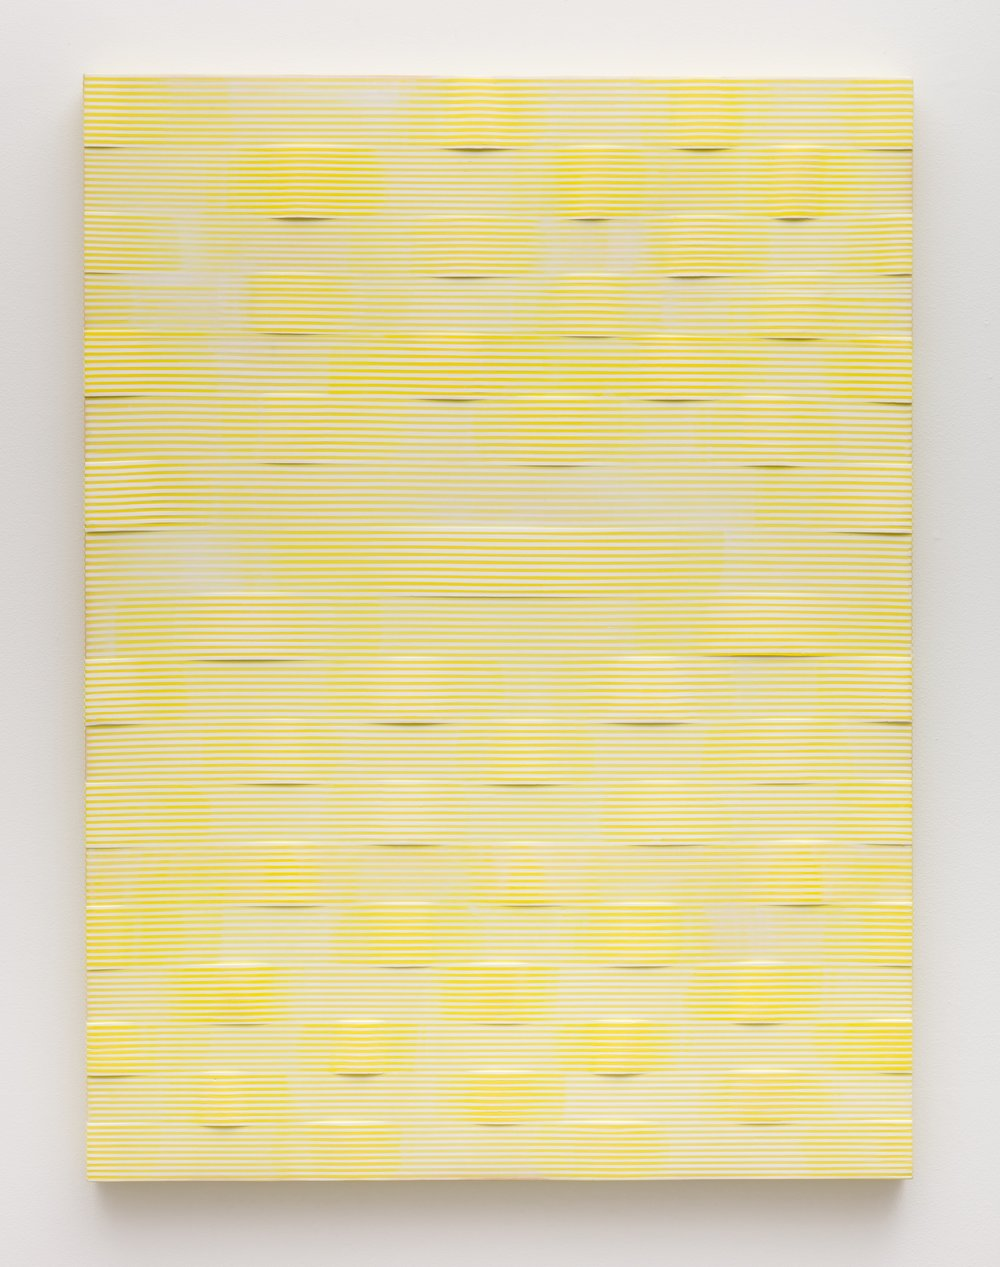 Mitchell Wright   beach   Acrylic on panel  40 inches x 30 inches  2016